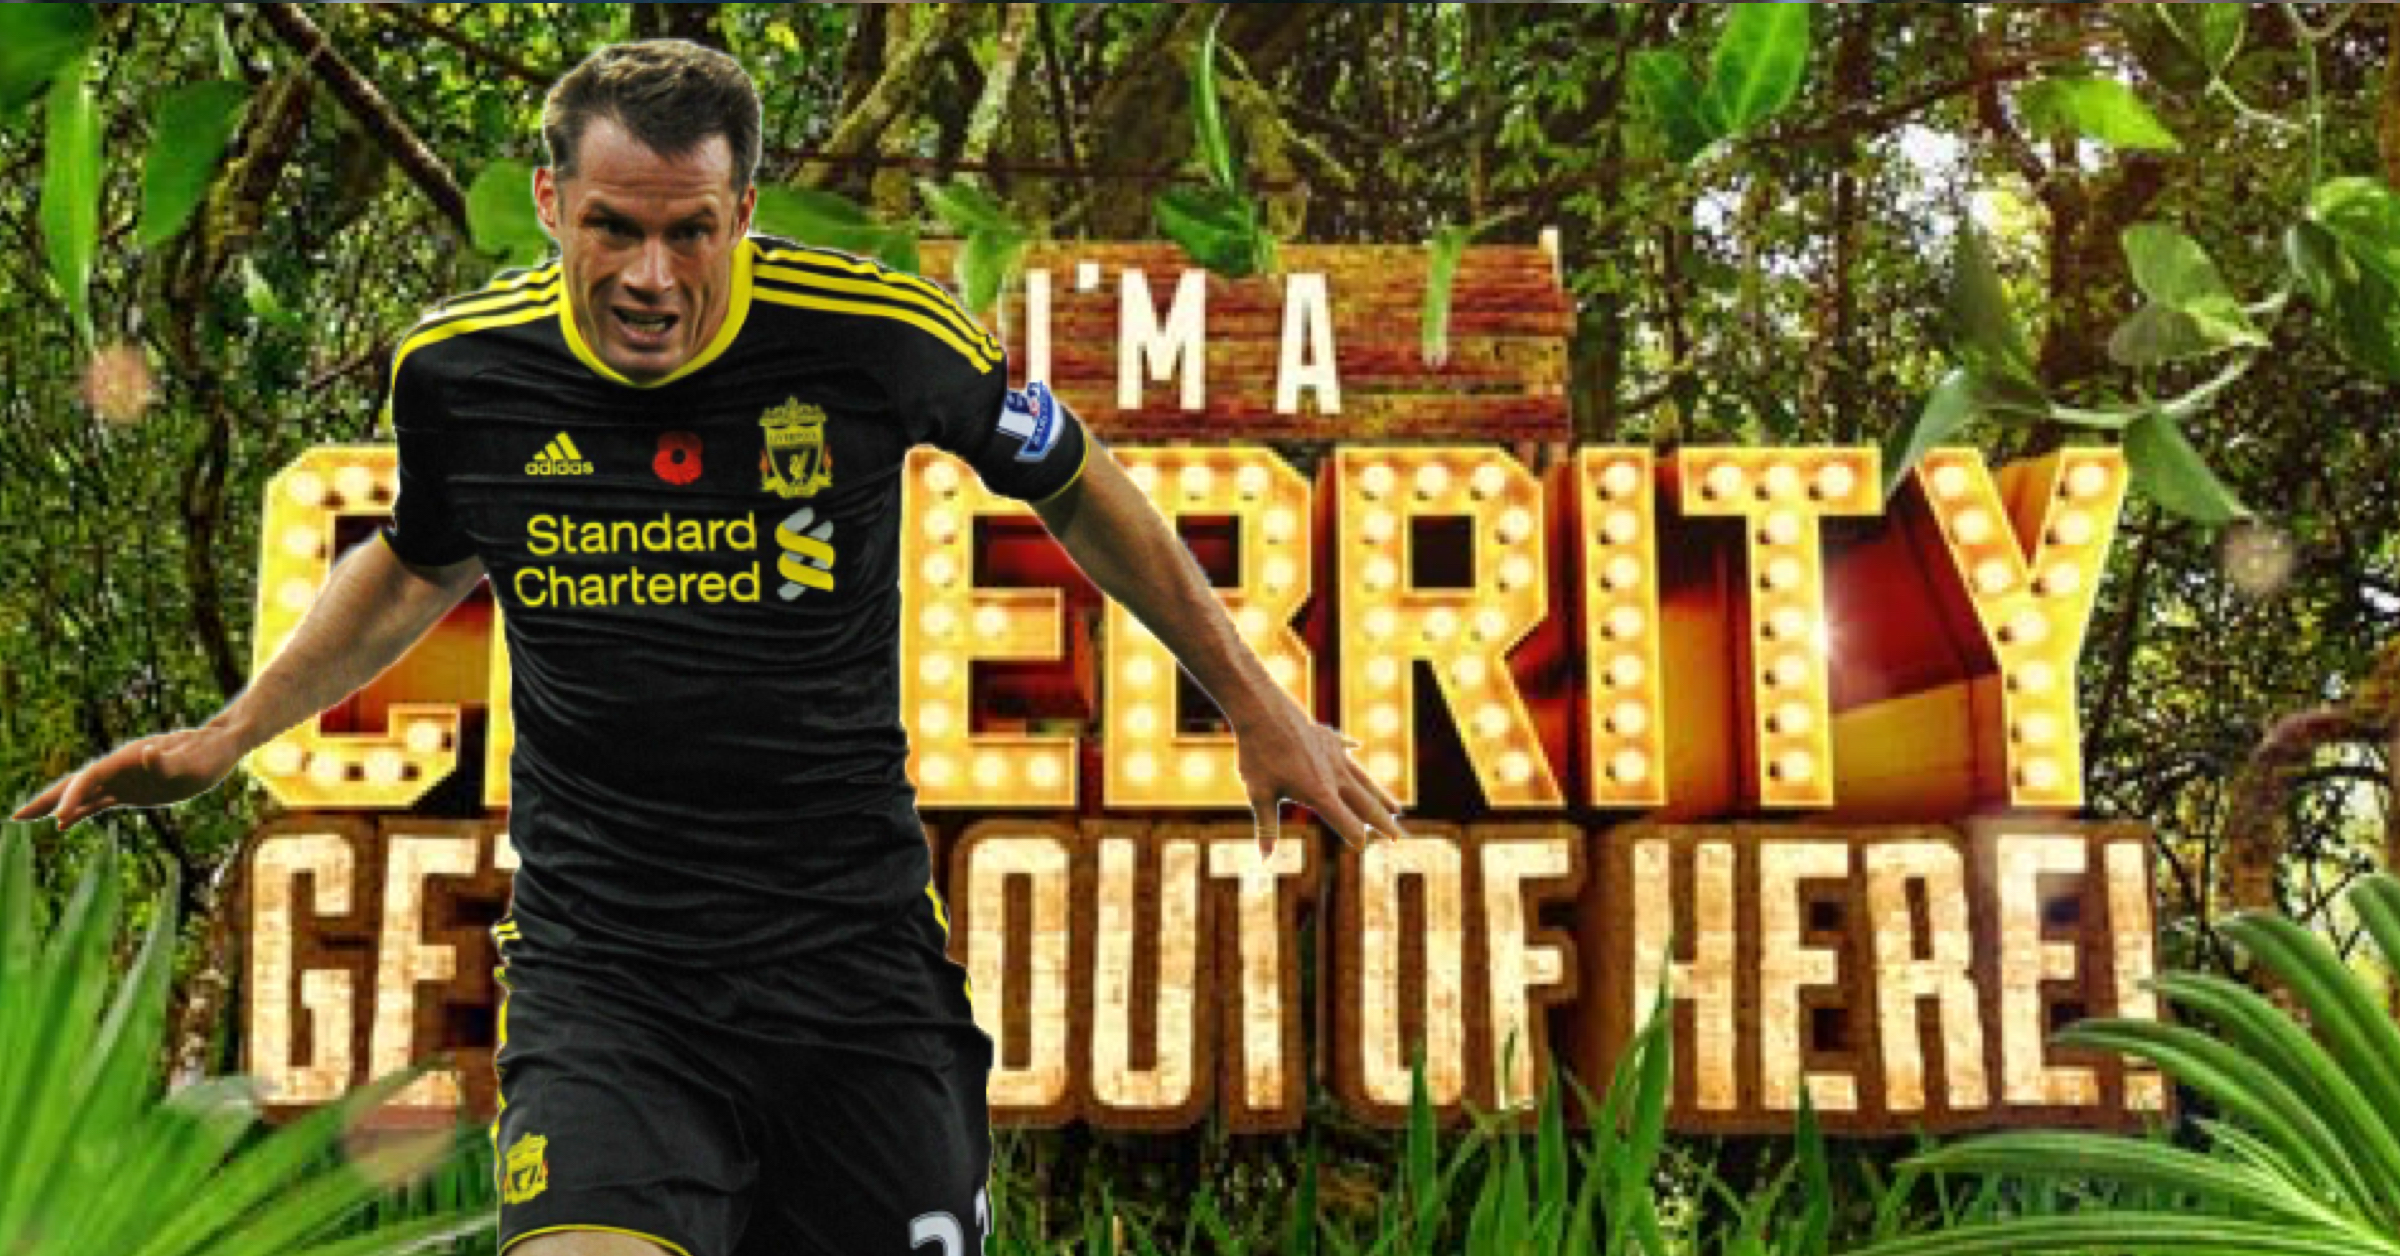 Jamie Carragher Offered Place On 'I'm A Celebrity Get Me Out Of Here'